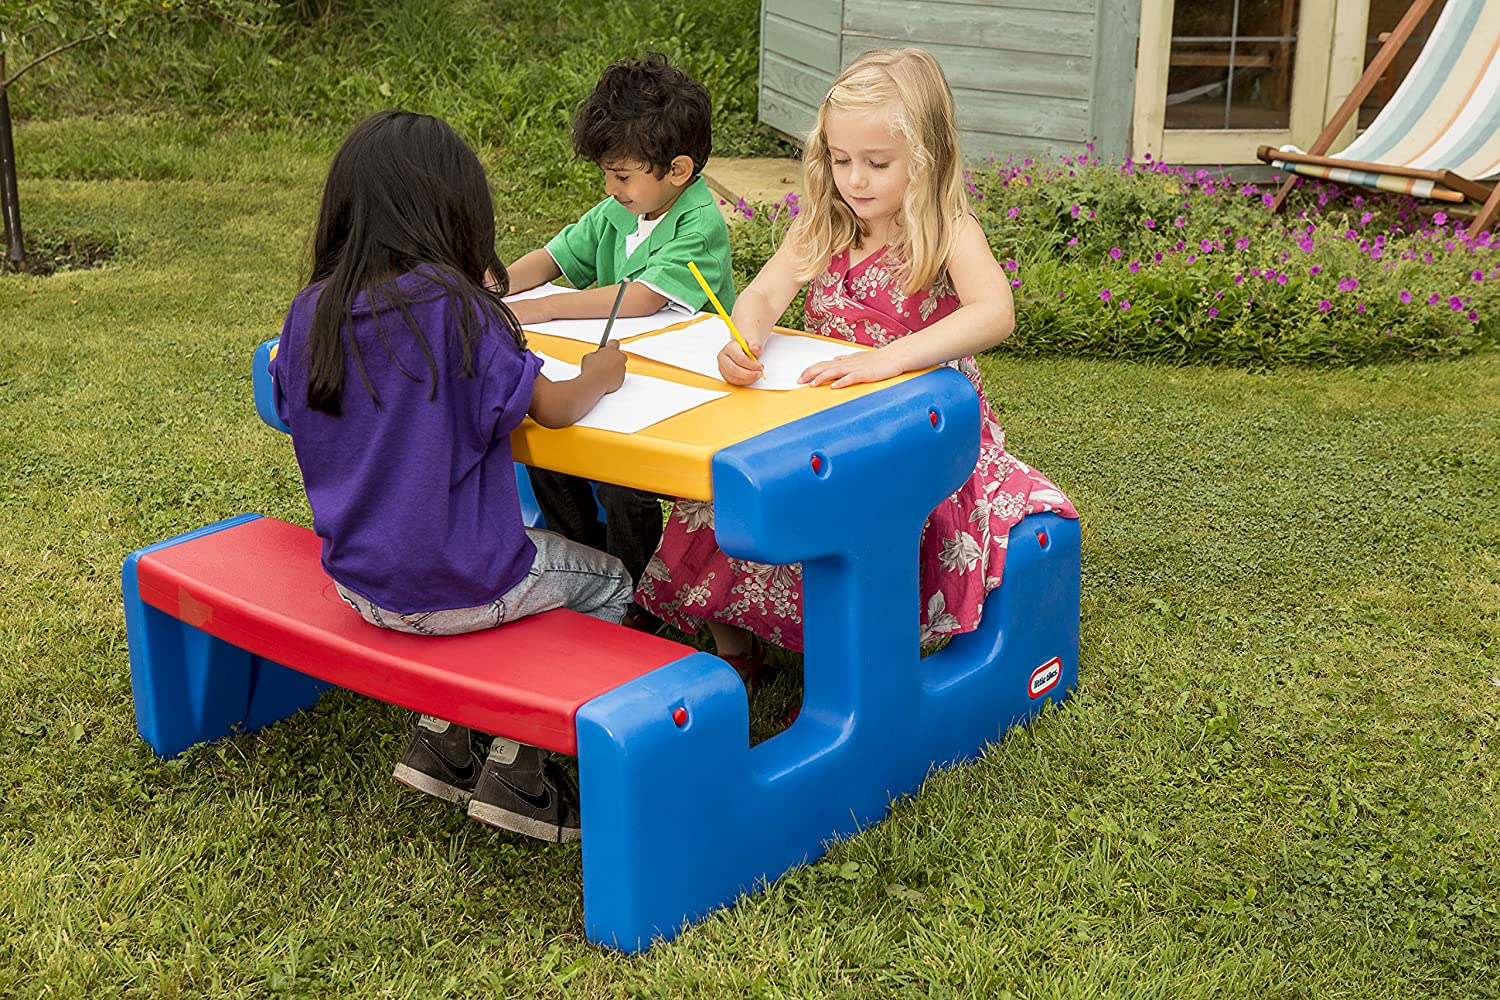 Little Tikes - 4668 - Grande table Pique Nique - Primaire